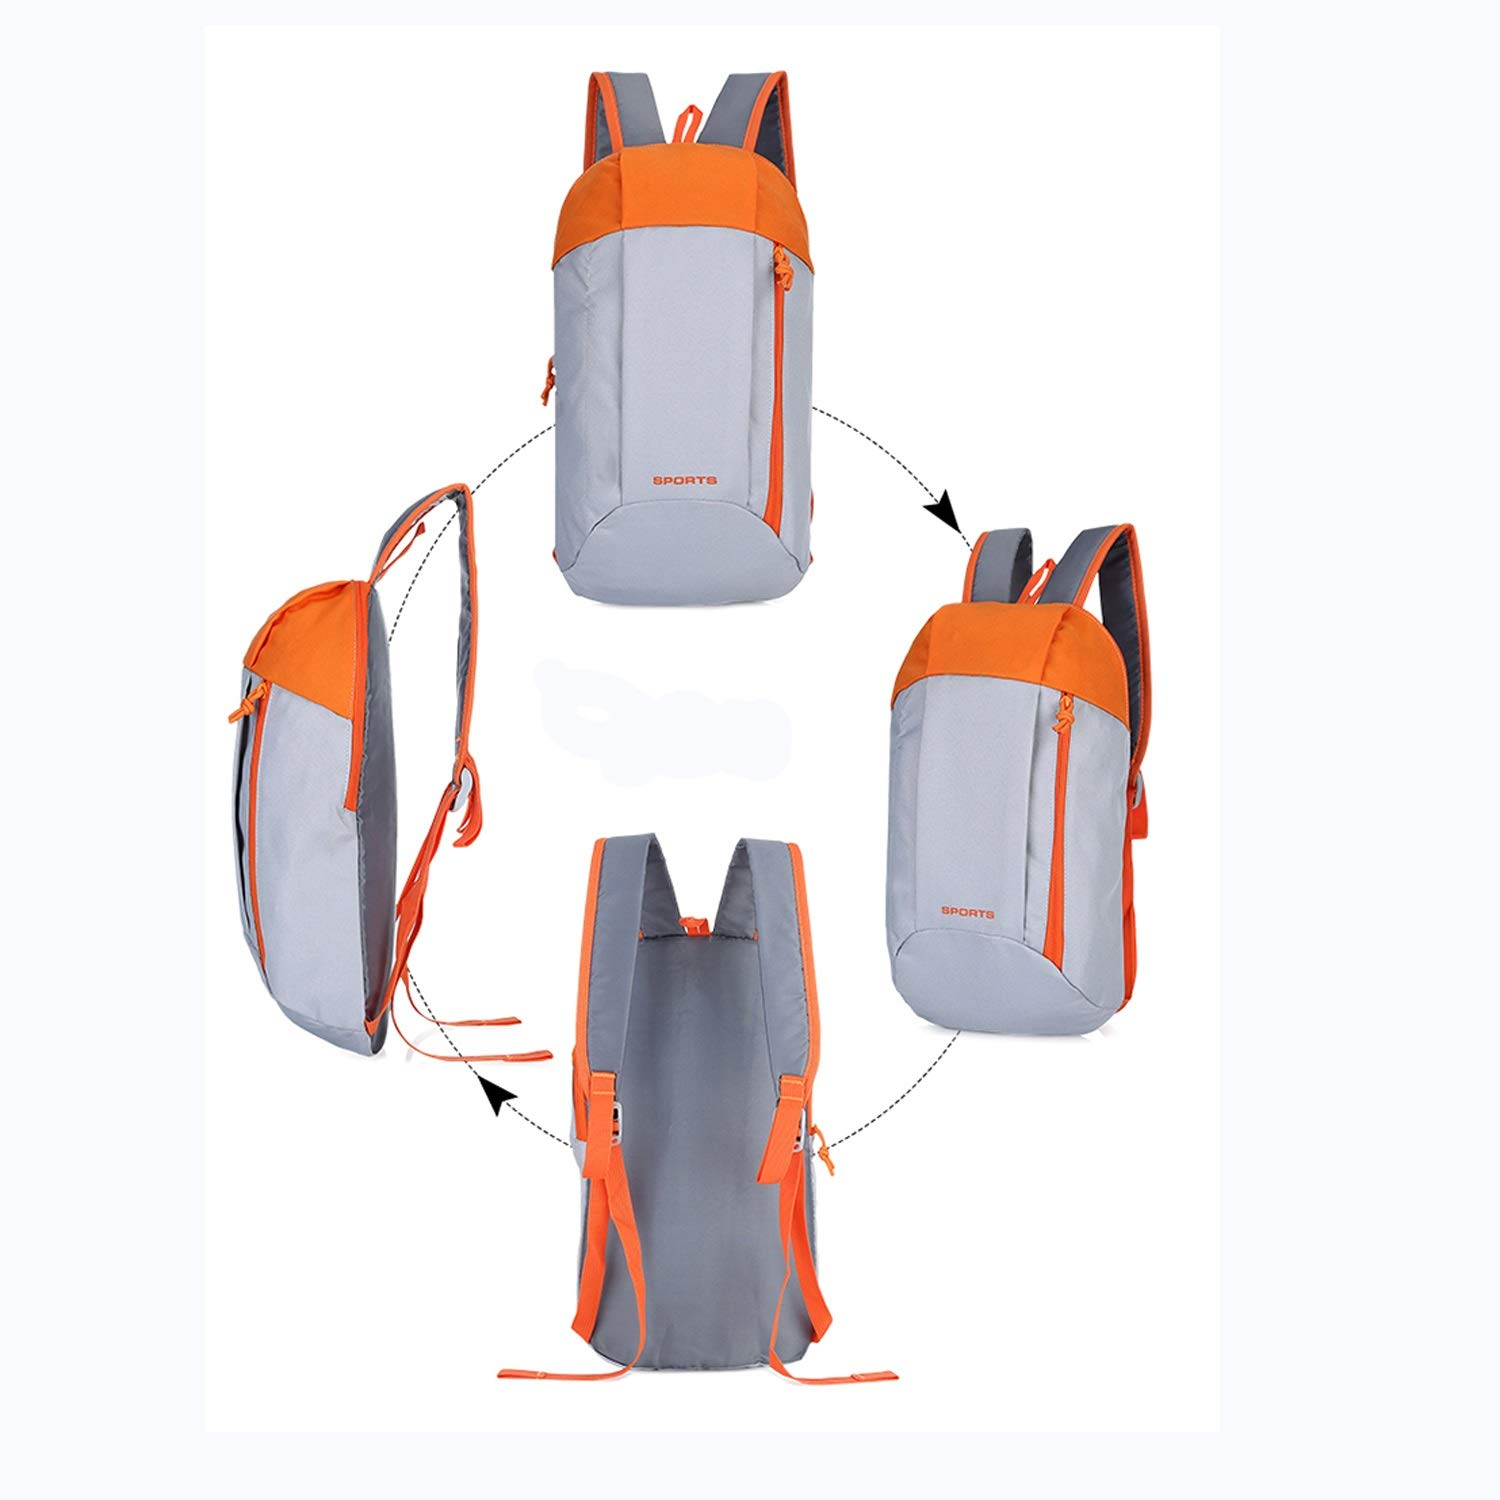 Color : Blue Nosterappou Large-Capacity Outdoor Leisure Travel Sports and Fitness Backpack Riding Backpack for Men and Women Students Waterproof Nylon Material Portable